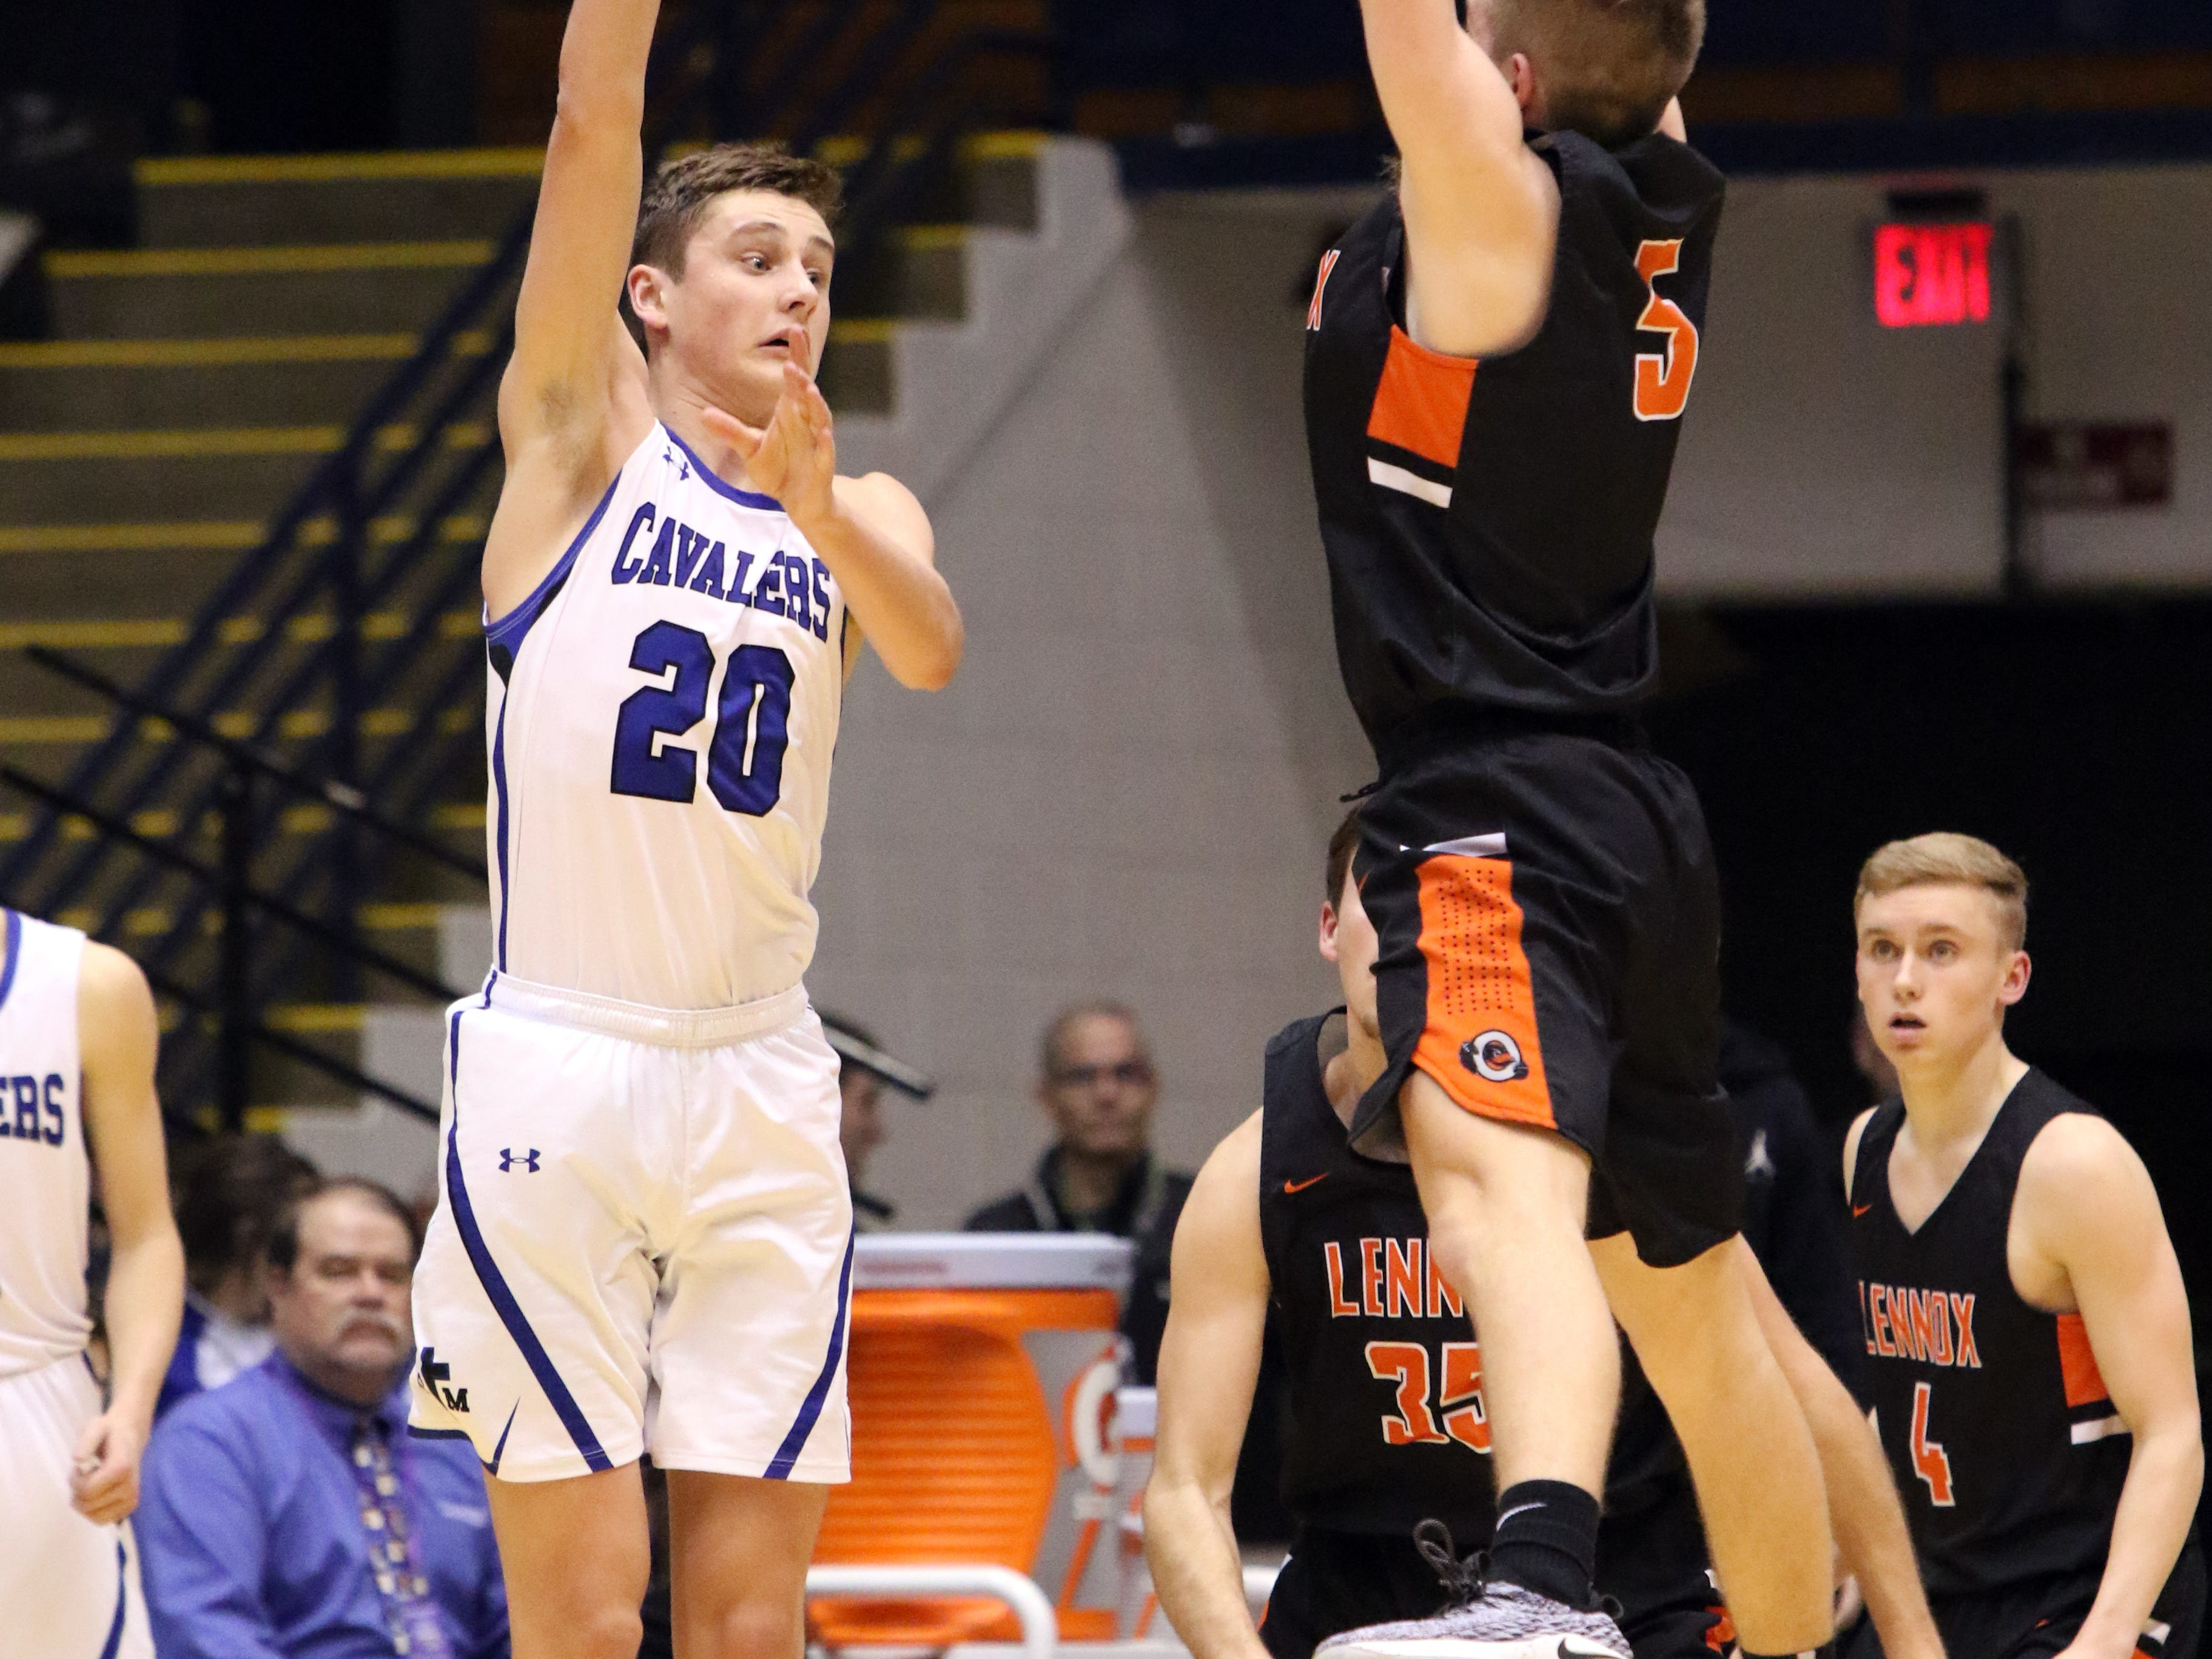 Josh Arlt of Lennox goes up to block the pass by Connor Hollenbeck of St Thomas More during Thursday night's game at the Arena in Sioux Falls.